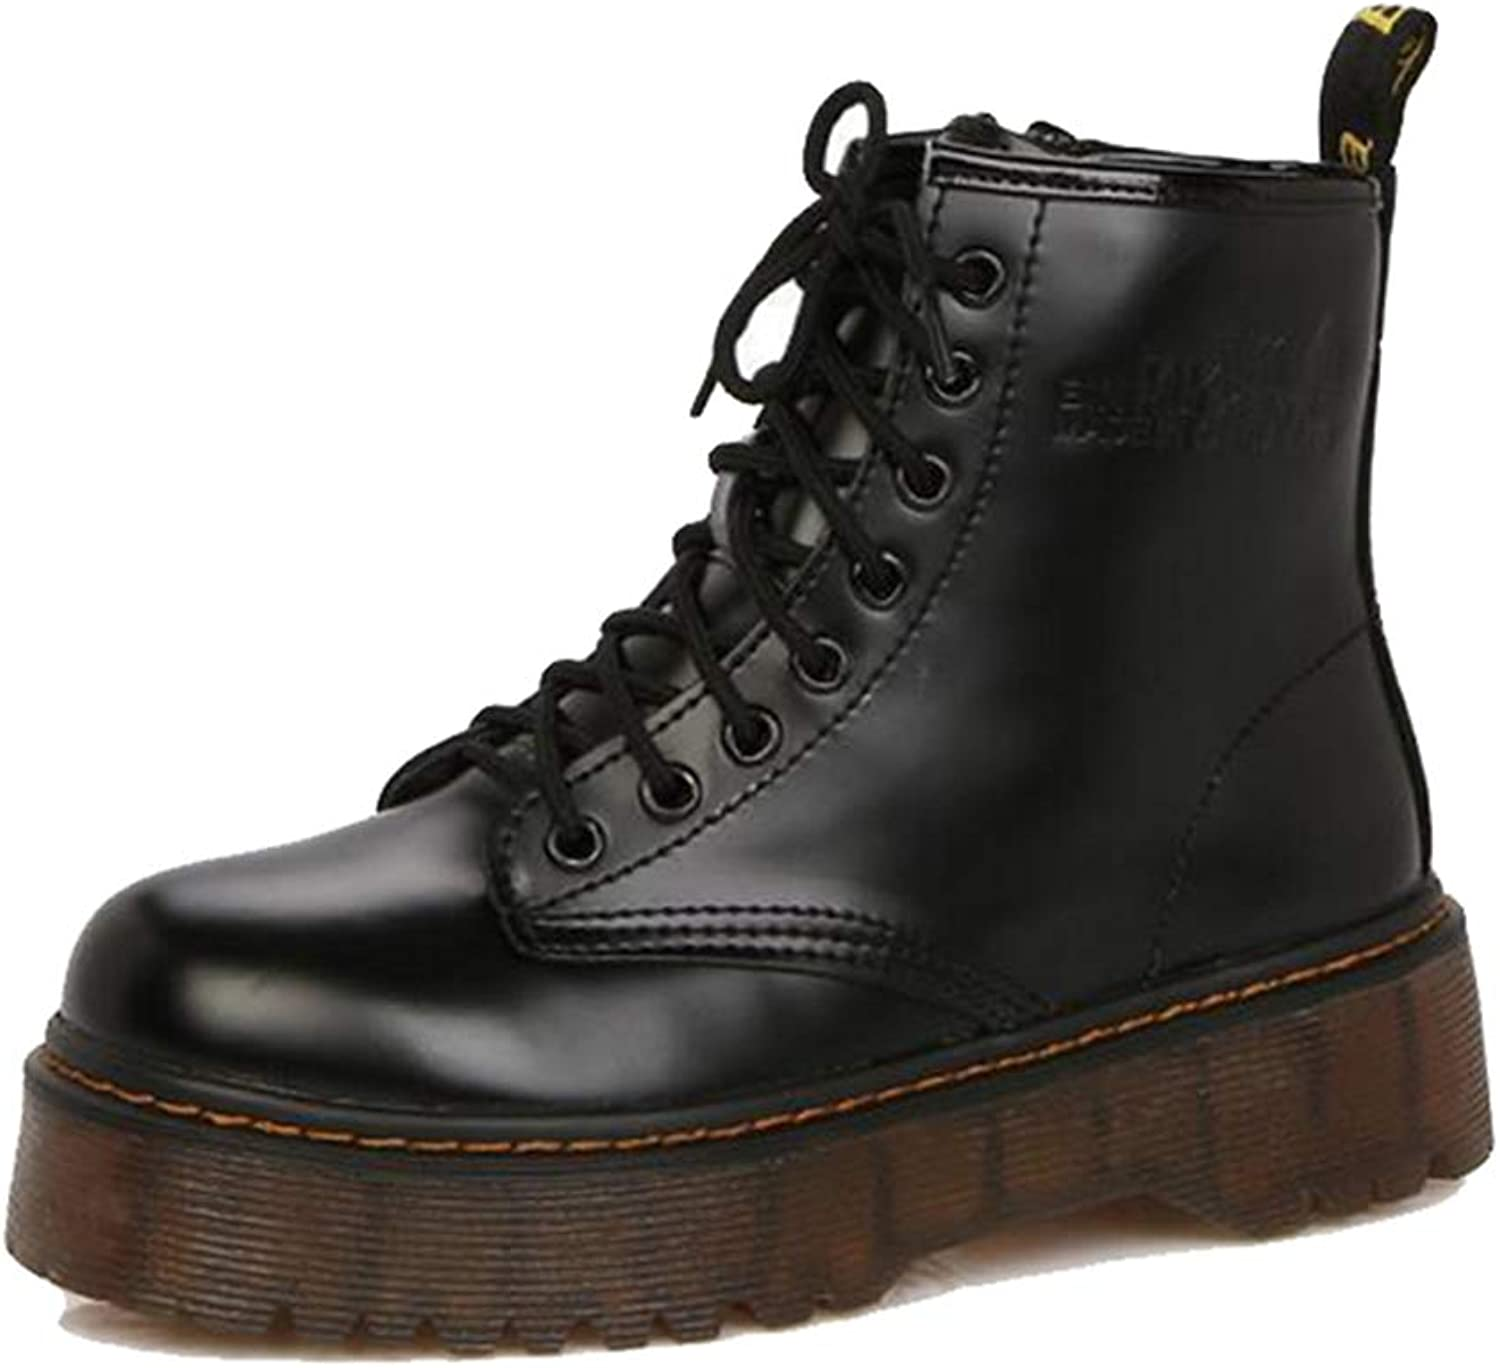 York Zhu Women Boots, Lacquer Leather, Autumn Thick Soles Martin's Boots